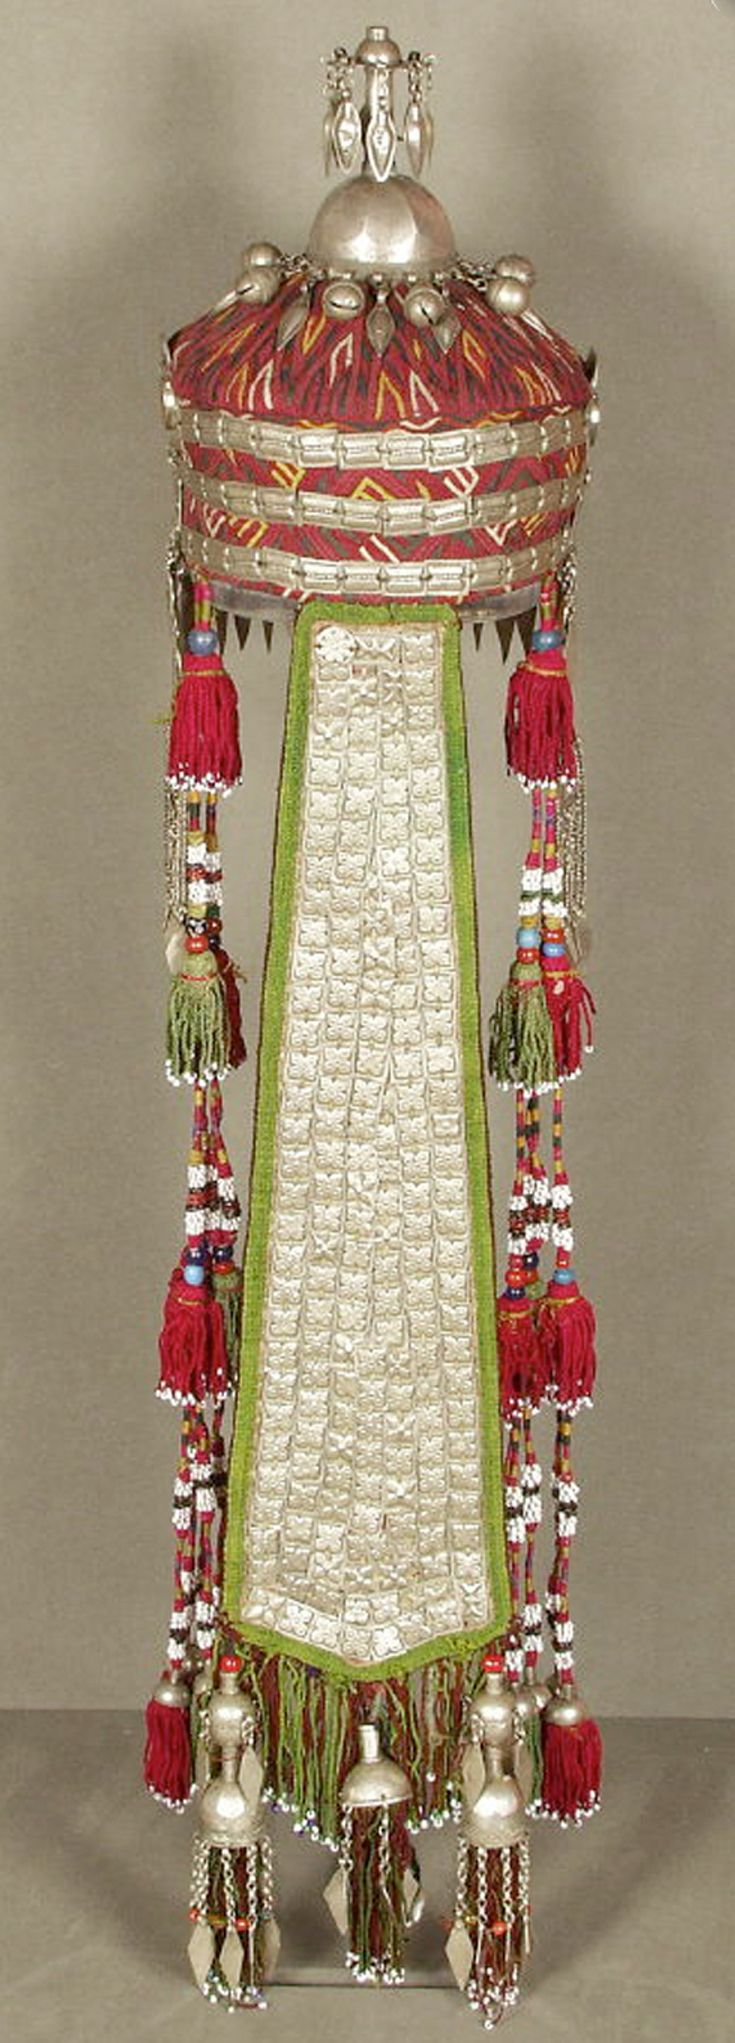 Turkmenistan | Bridal headdress; Cotton cap embroidered with silk and ornamented with silver, carnelian, silk tassels and beads | Turkmen, Yomut Tribe | 19th to early 20th century